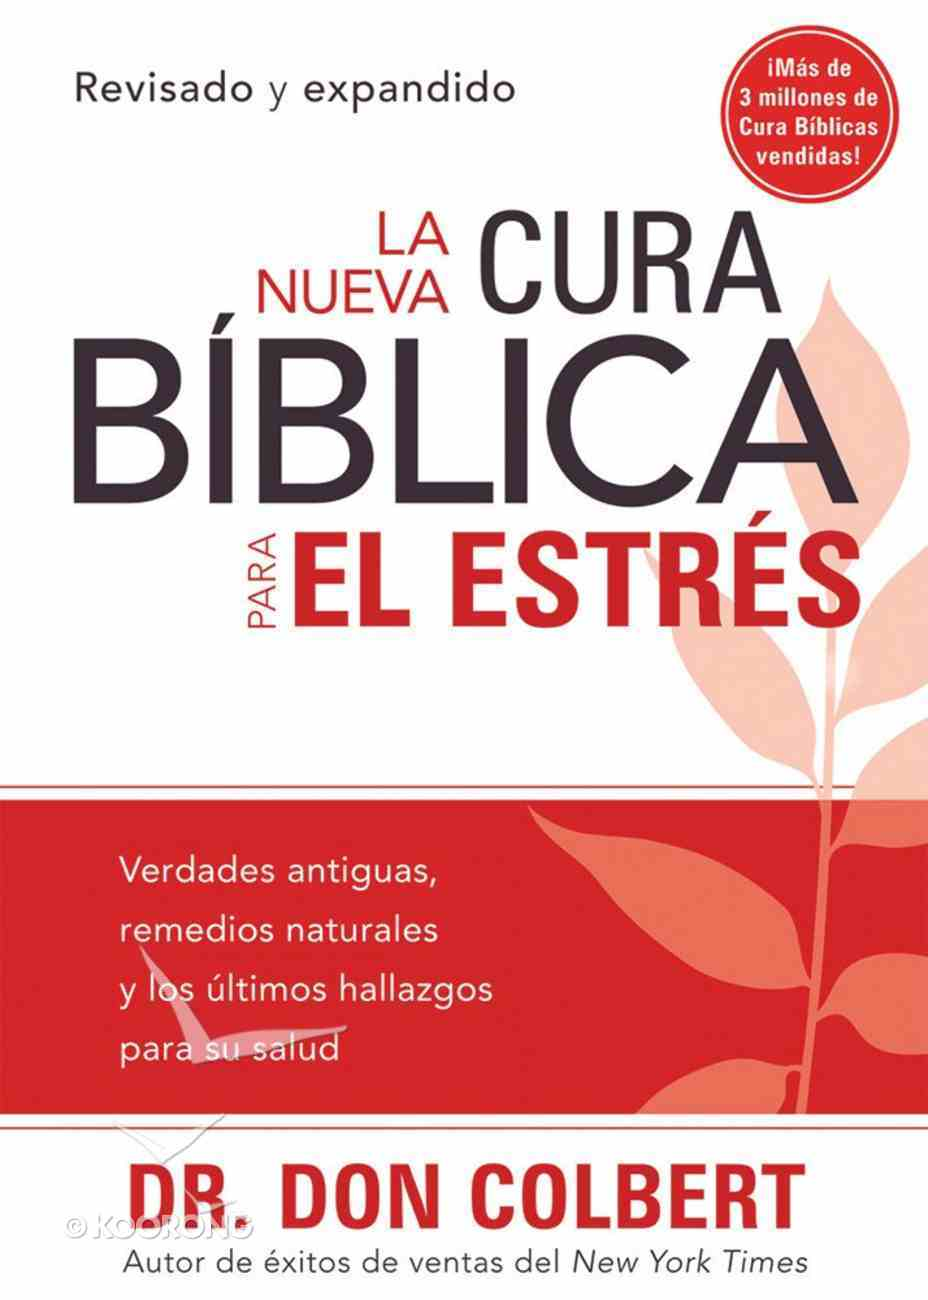 La Nueva Cura Biblica Para El Estres (The New Bible Cure For Stress) (Bible Cure Series) Paperback